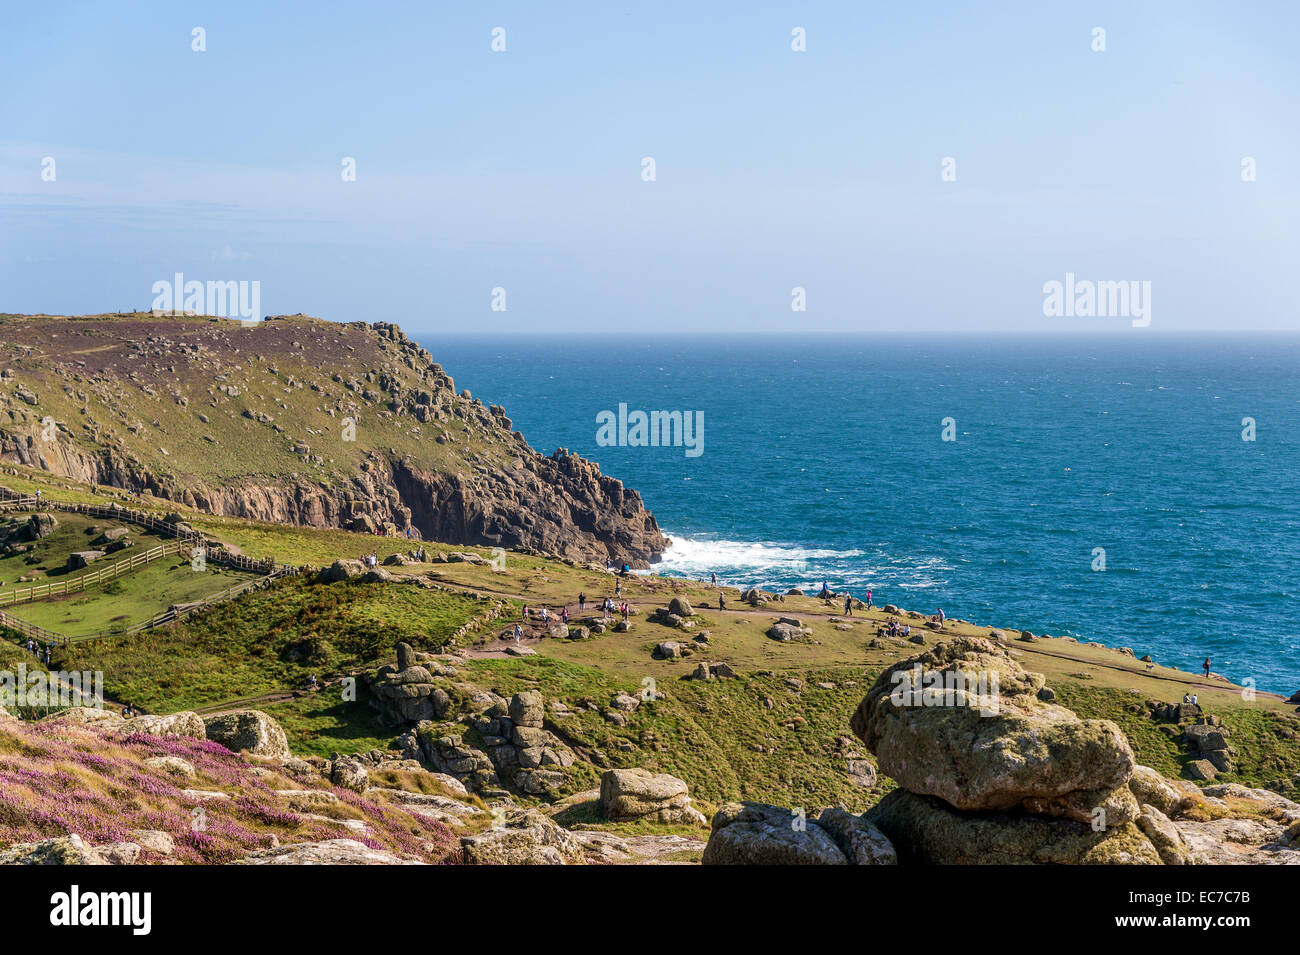 United Kingdom, England, Cornwall, Land's End, Rocky coast at Englisch Chanel - Stock Image